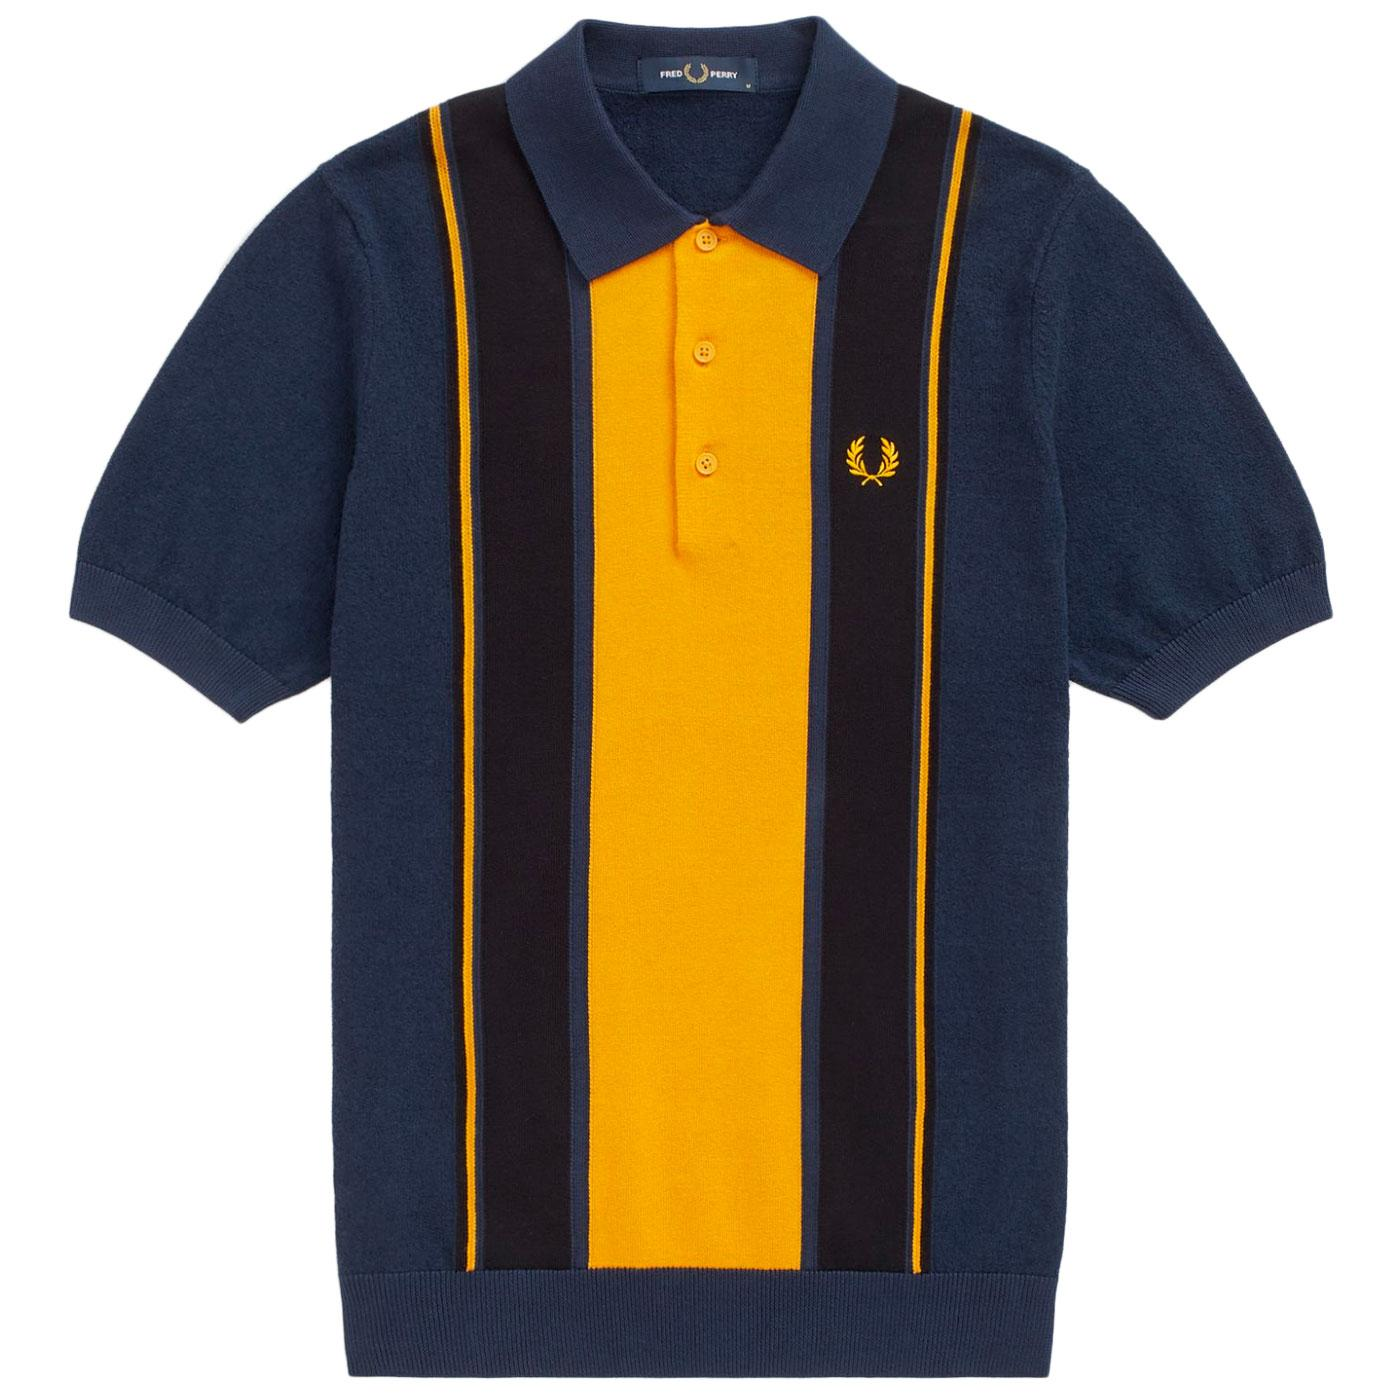 FRED PERRY K9548 Retro Mod Striped Knit Polo Shirt